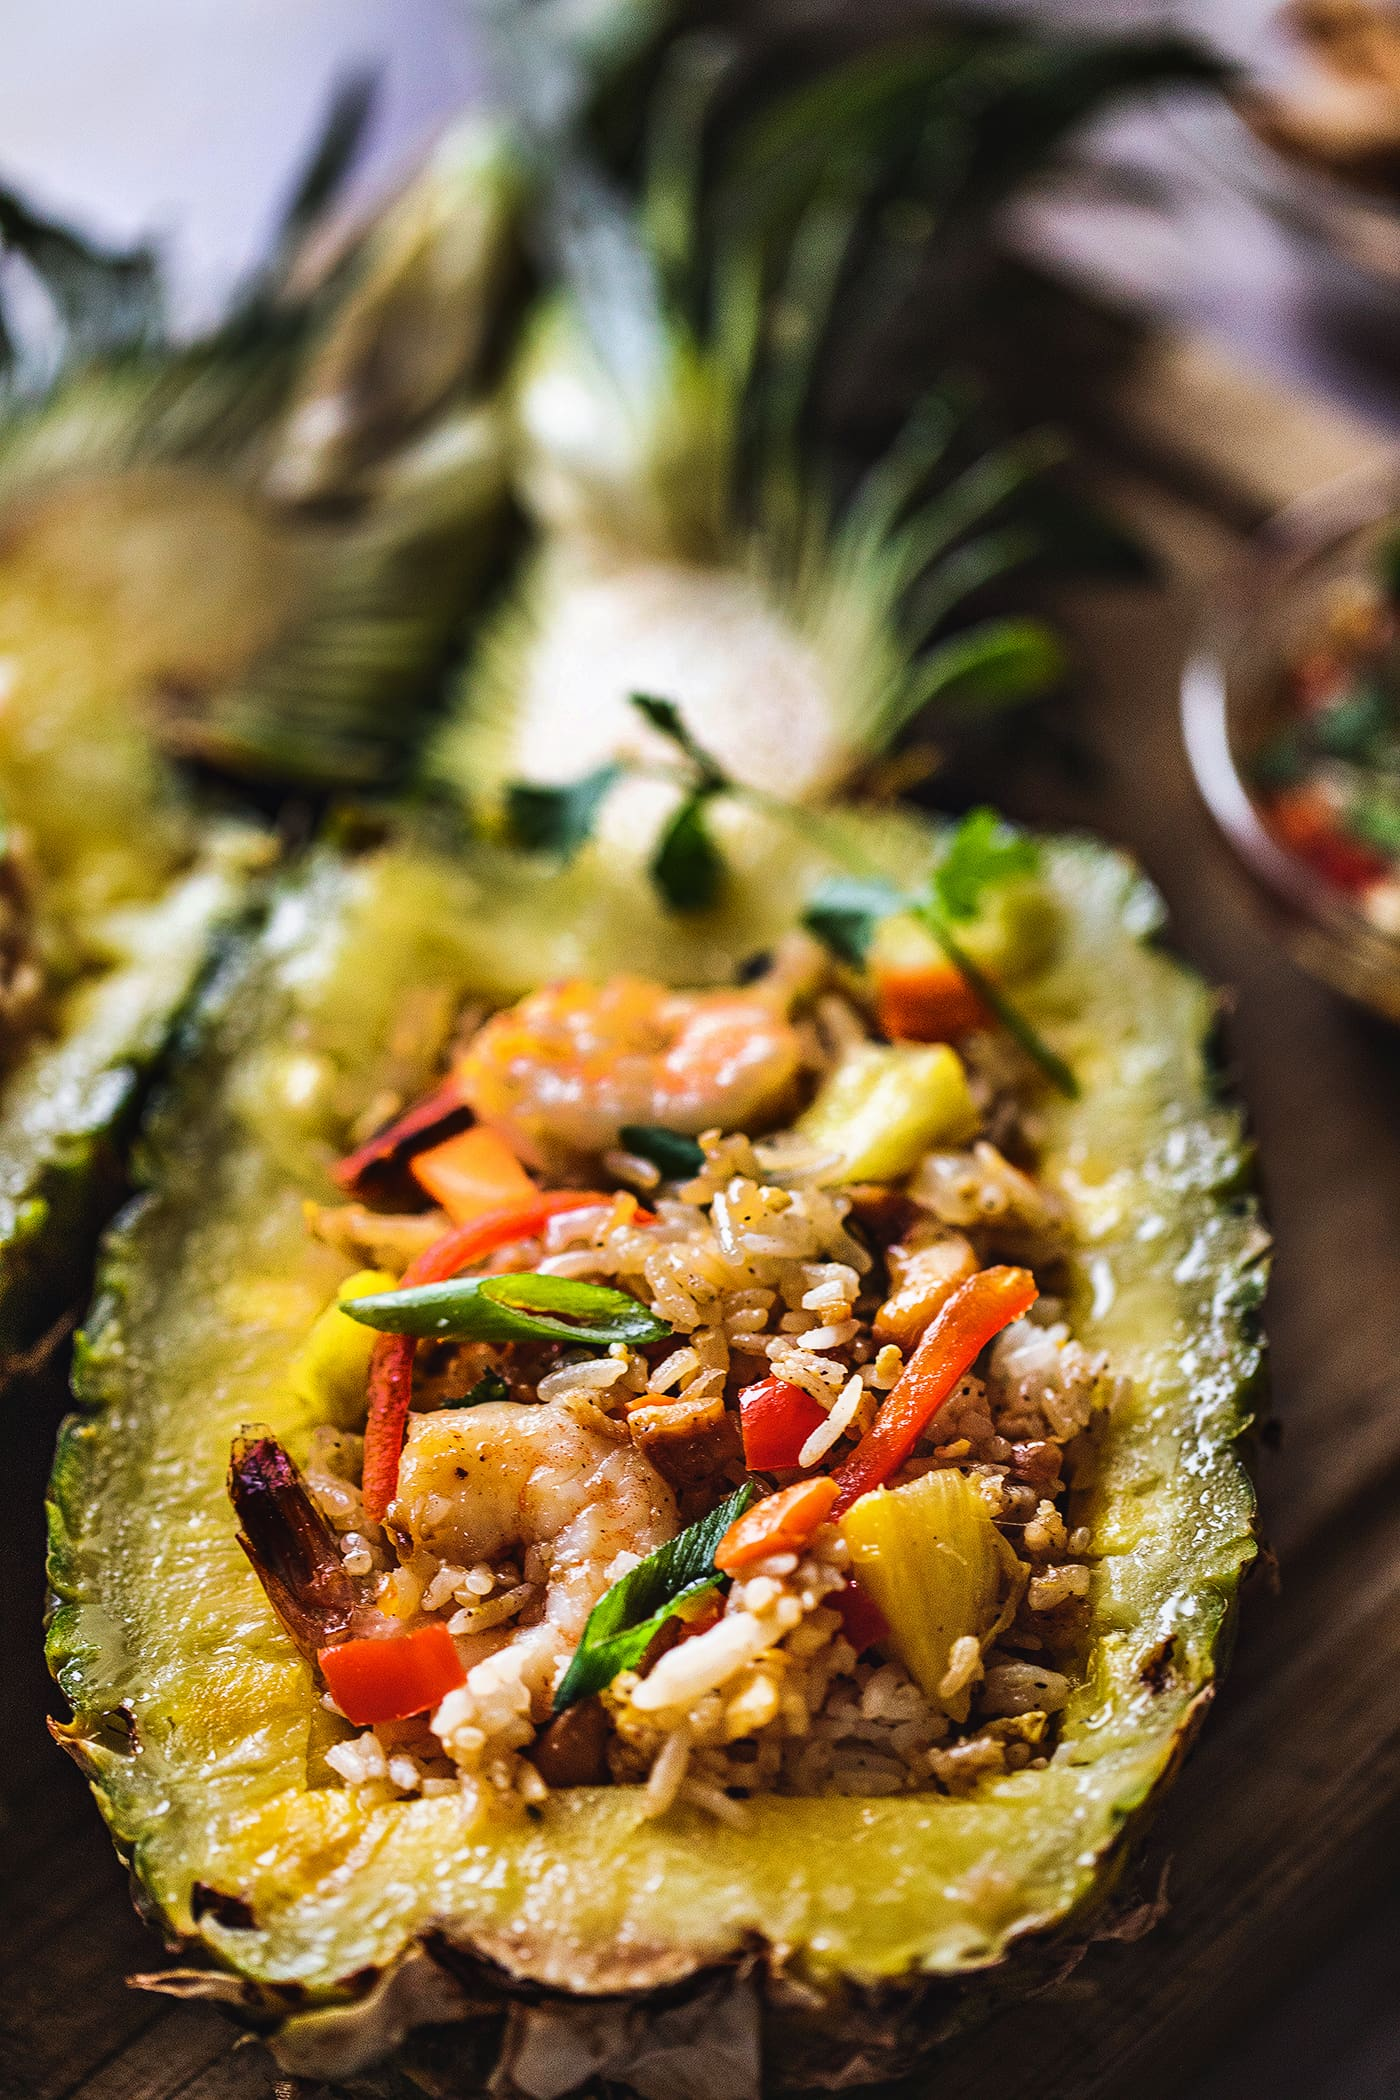 Pineapple fried rice with shrimp is a quick and easy Thai dish that is savory, sweet, and delicious. This recipe is a quick one to put together, taking less than 30 minutes. Perfect for a busy weeknight dinner!#shrimppineapplefriedrice #pineapplefriedrice #thaipineapplefriedrice #thaifriedrice